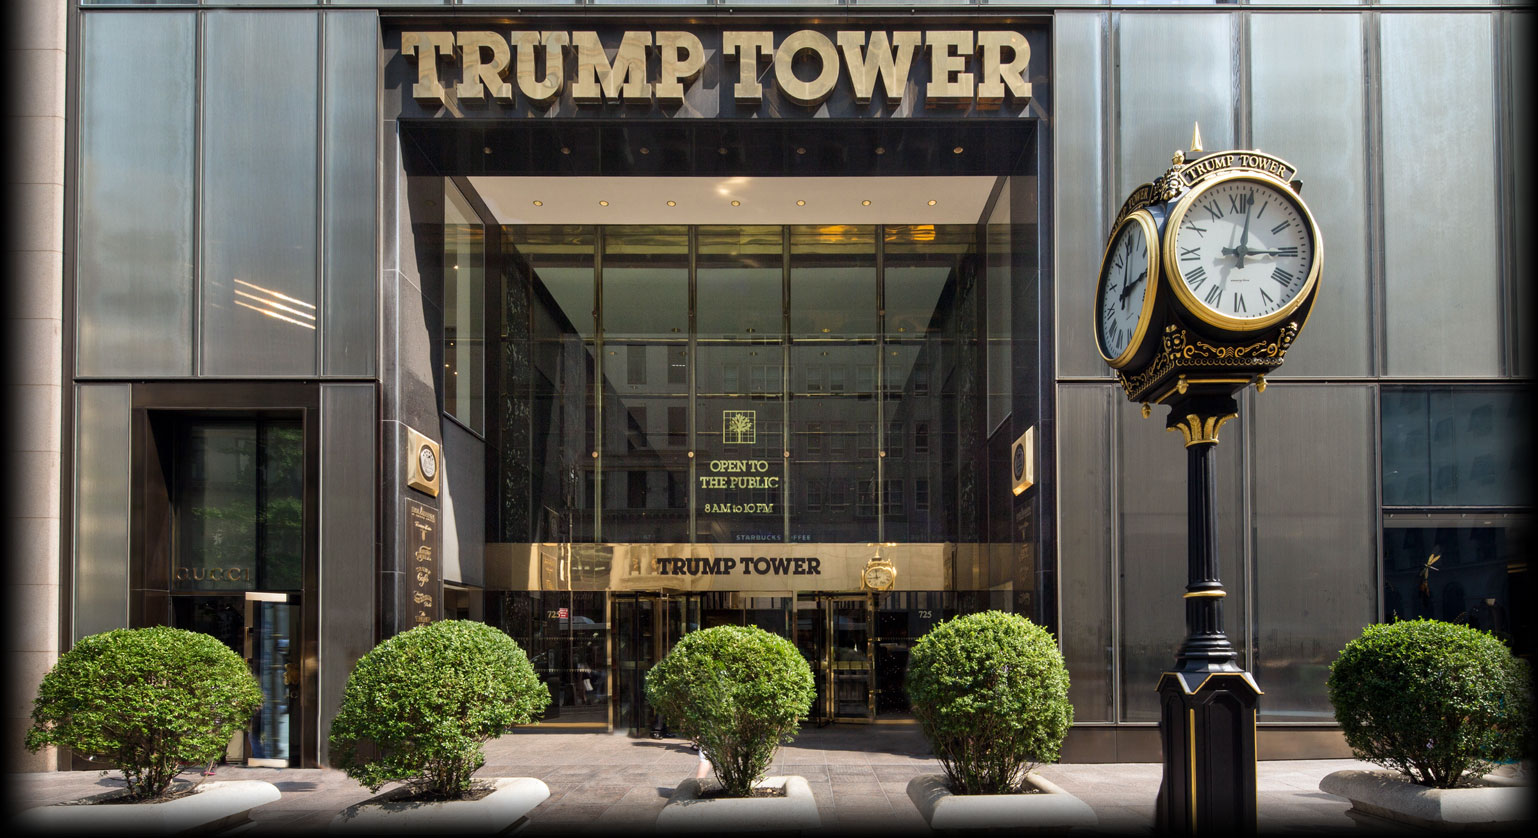 Armed Man Arrested at Trump Tower